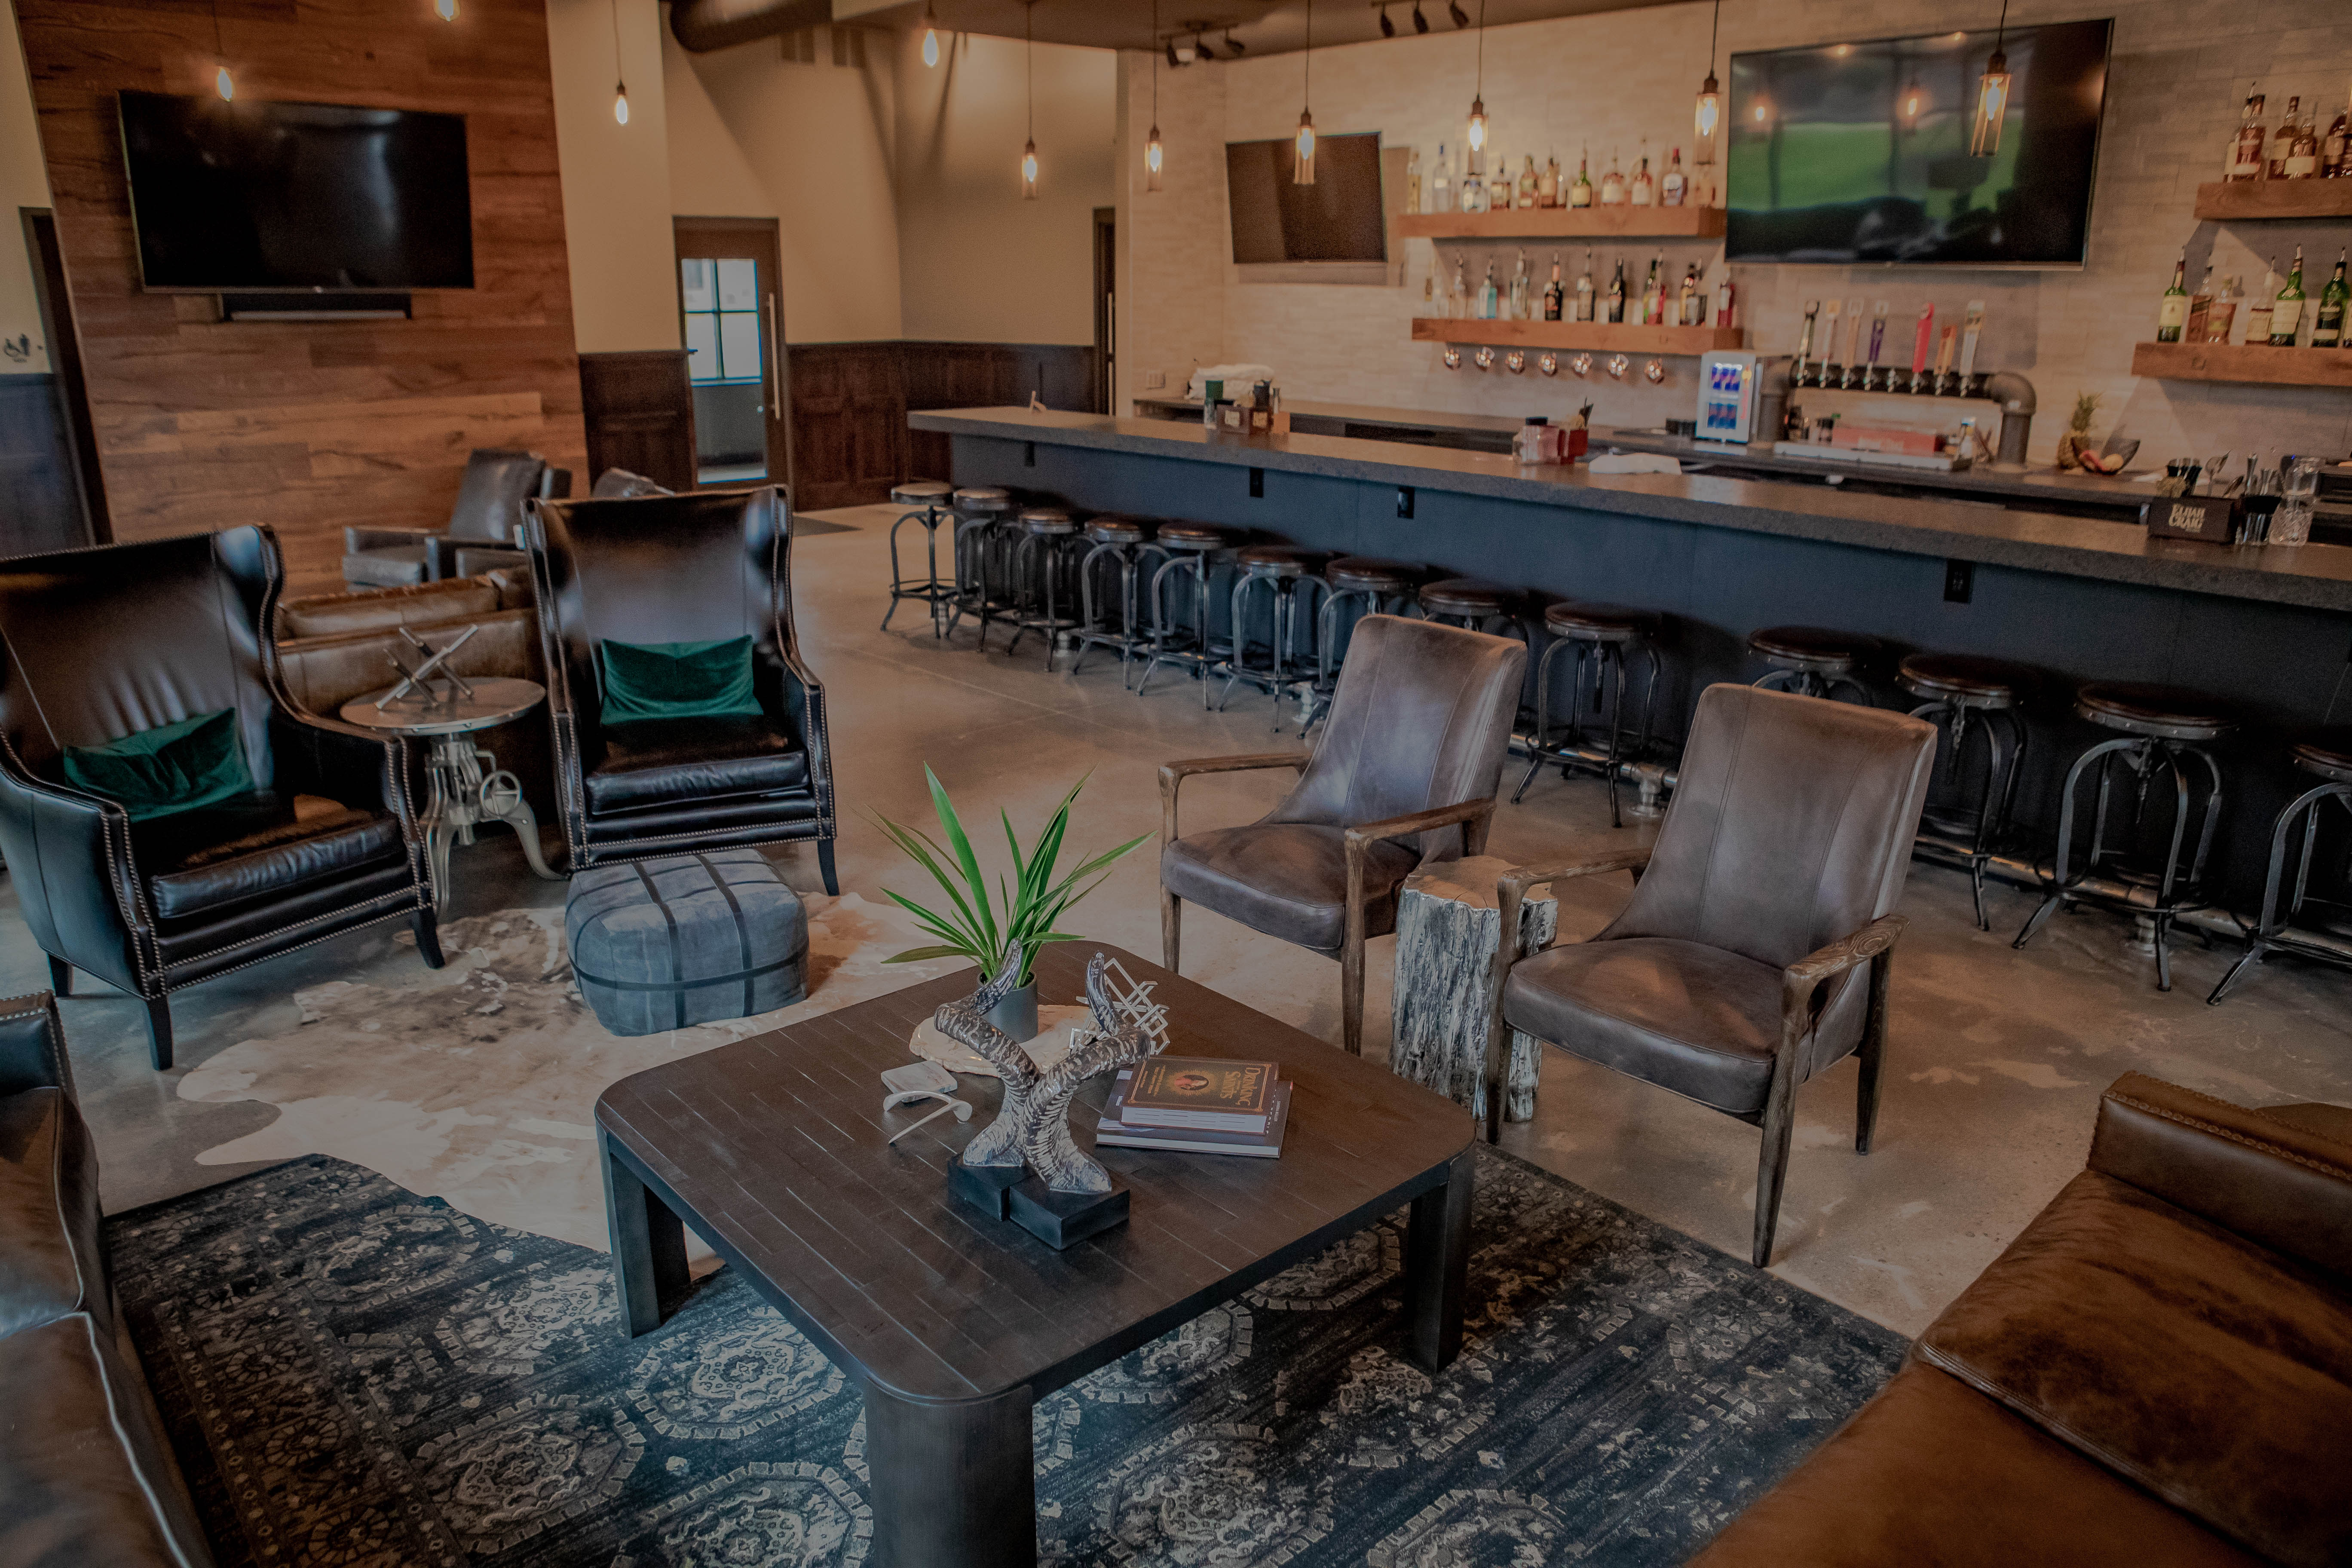 Combination Cocktail Bar and Men's Barbershop Is Coming to South Austin